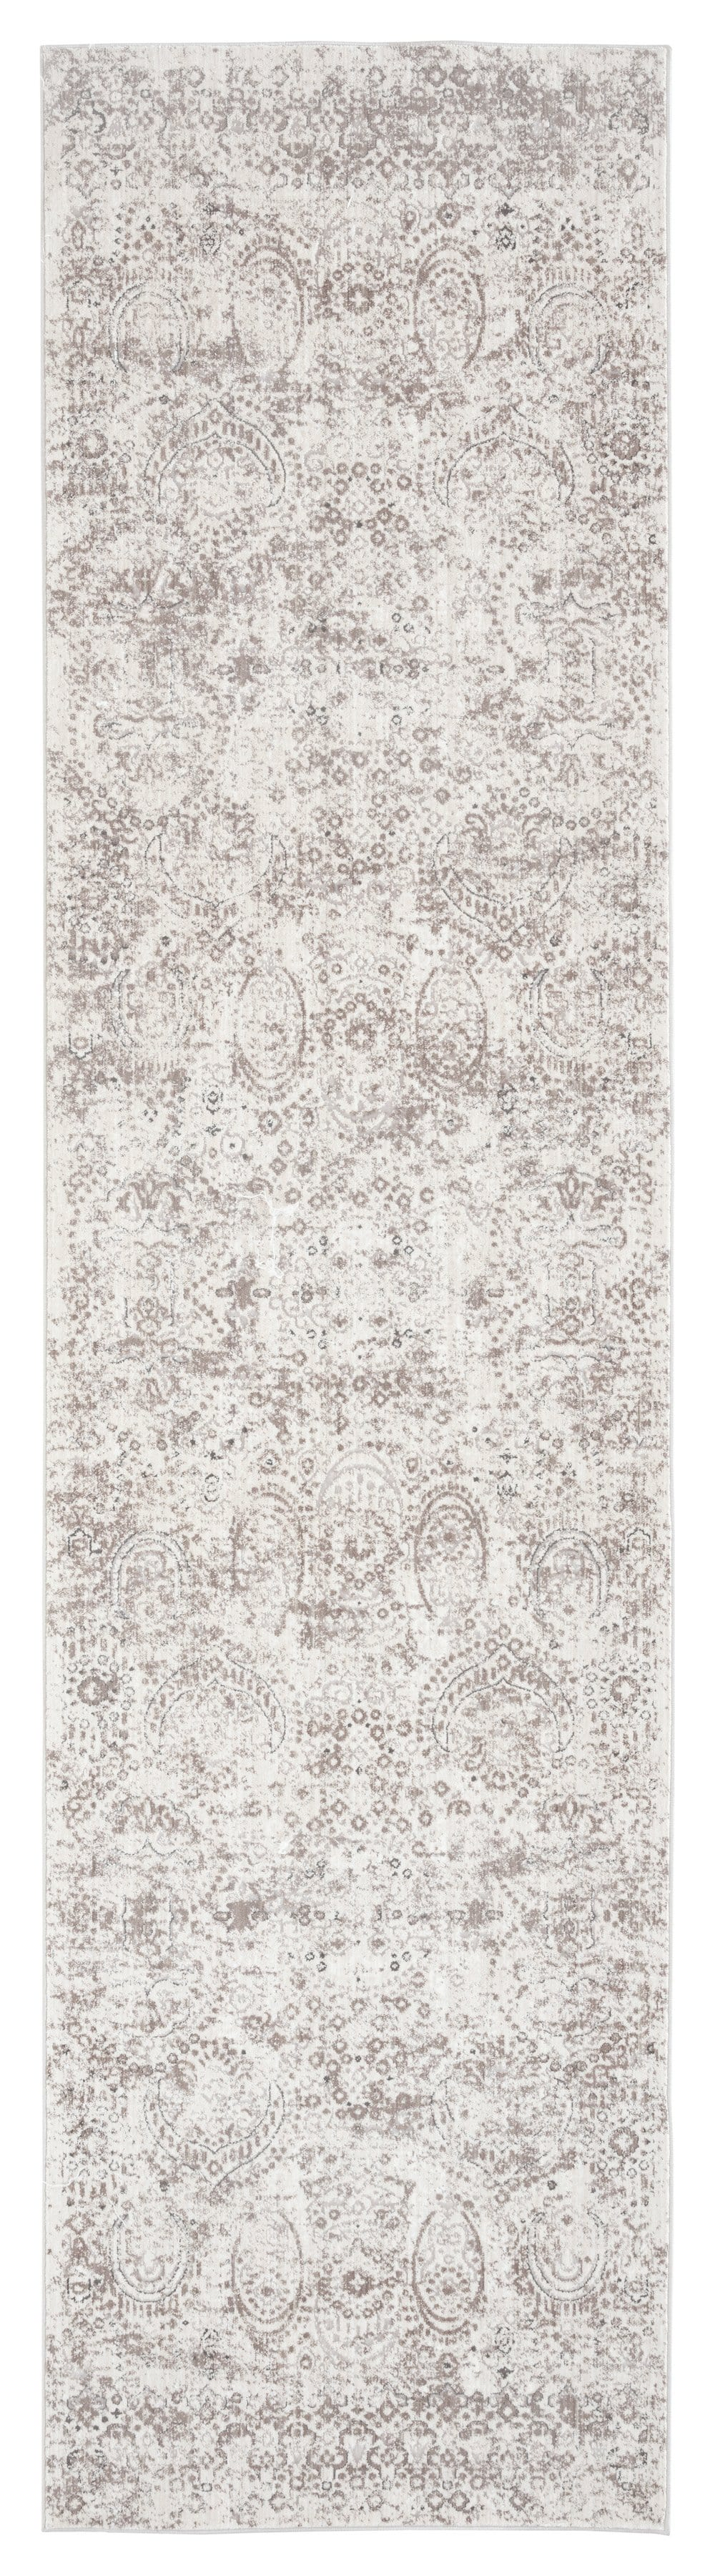 Poppy Cream Brown and Grey Traditional Floral Runner Rug